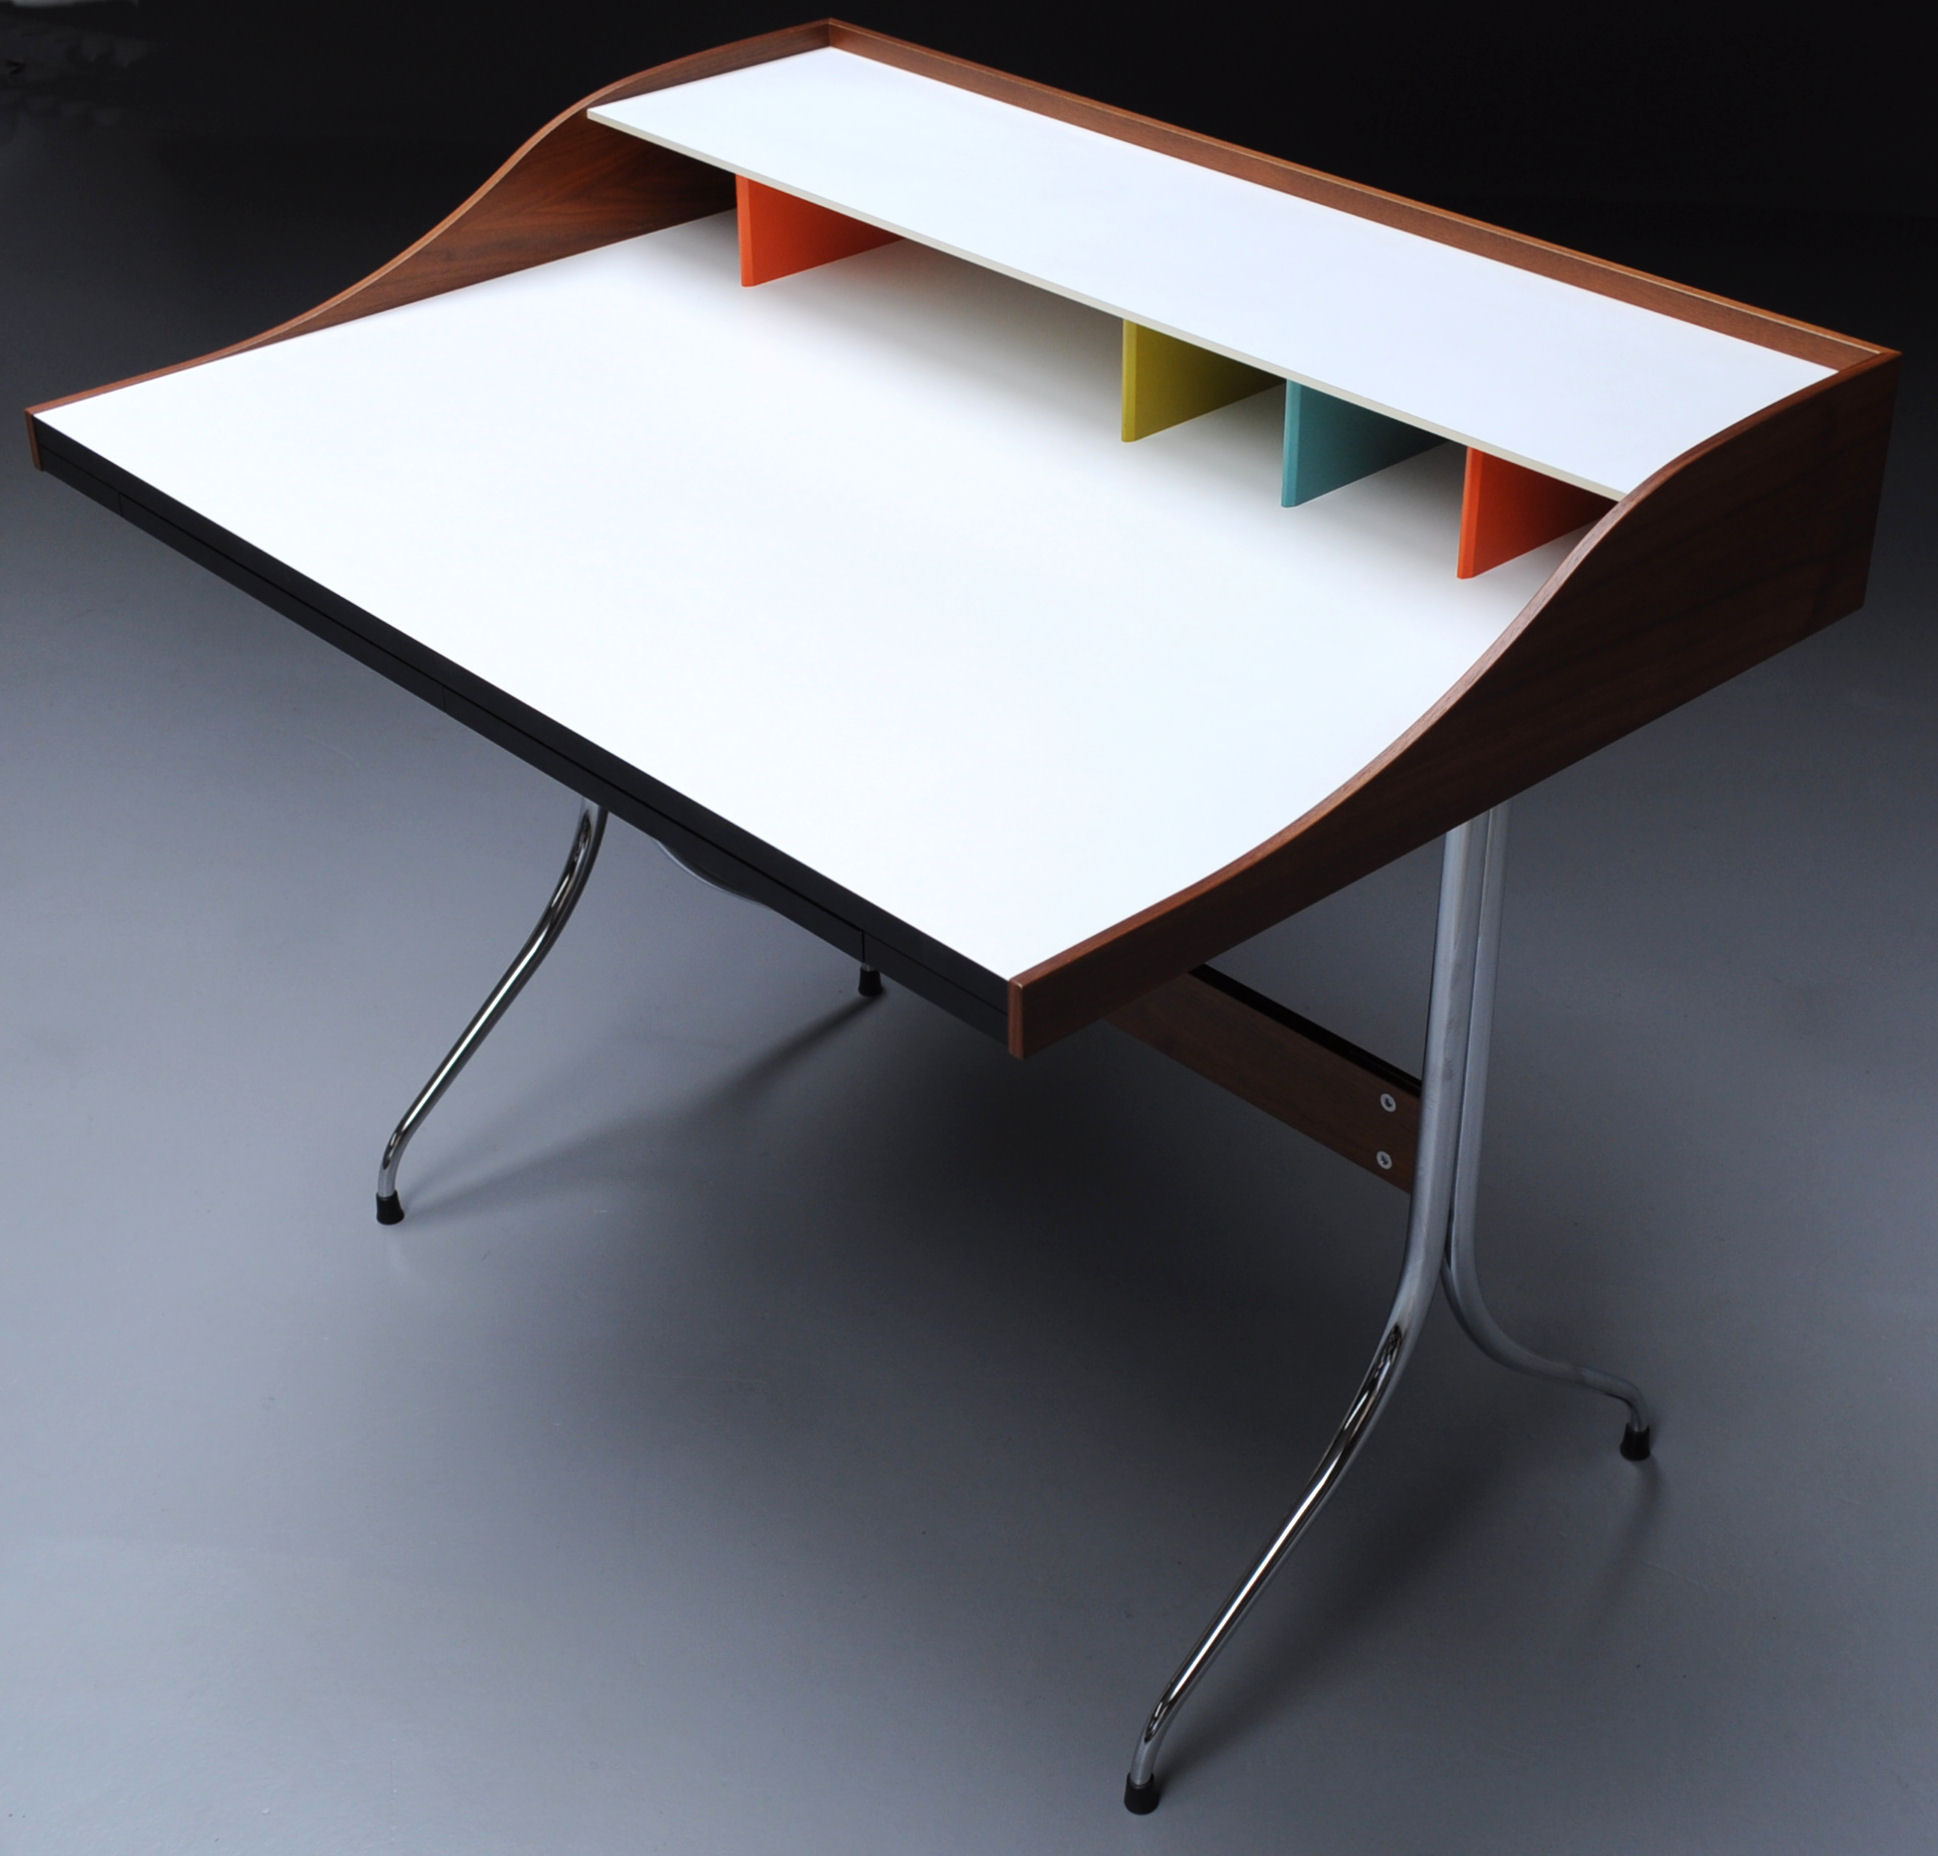 George Nelson. Home desk